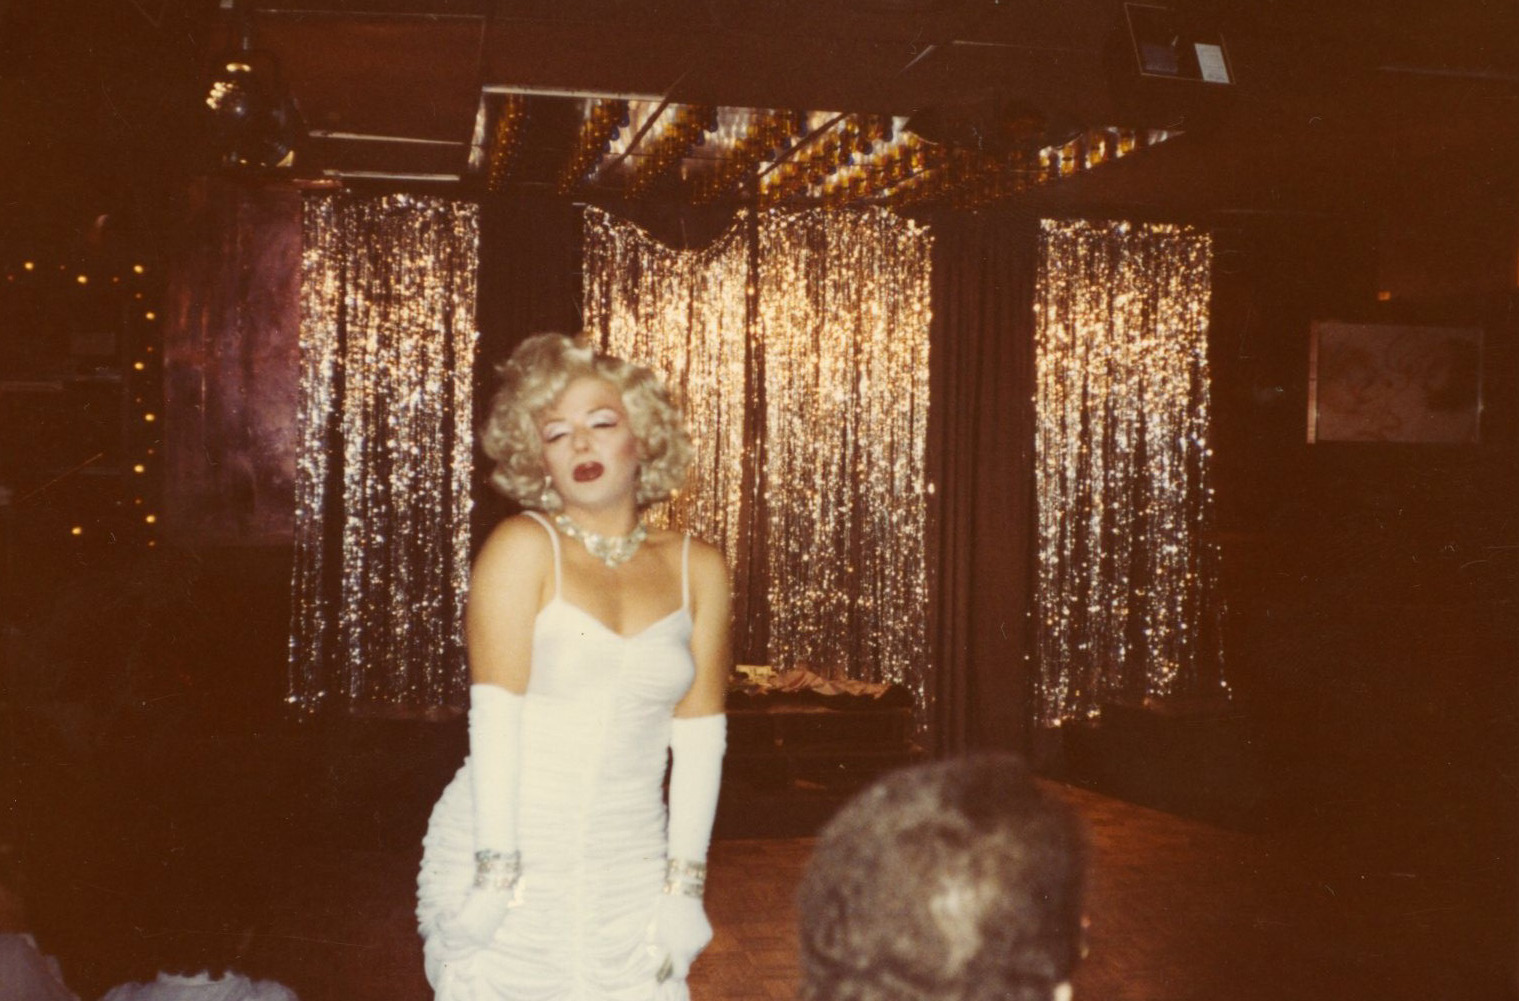 Marilyn Monroe drag impersonator performing; photo from MS 117 Lollie Johnson Papers